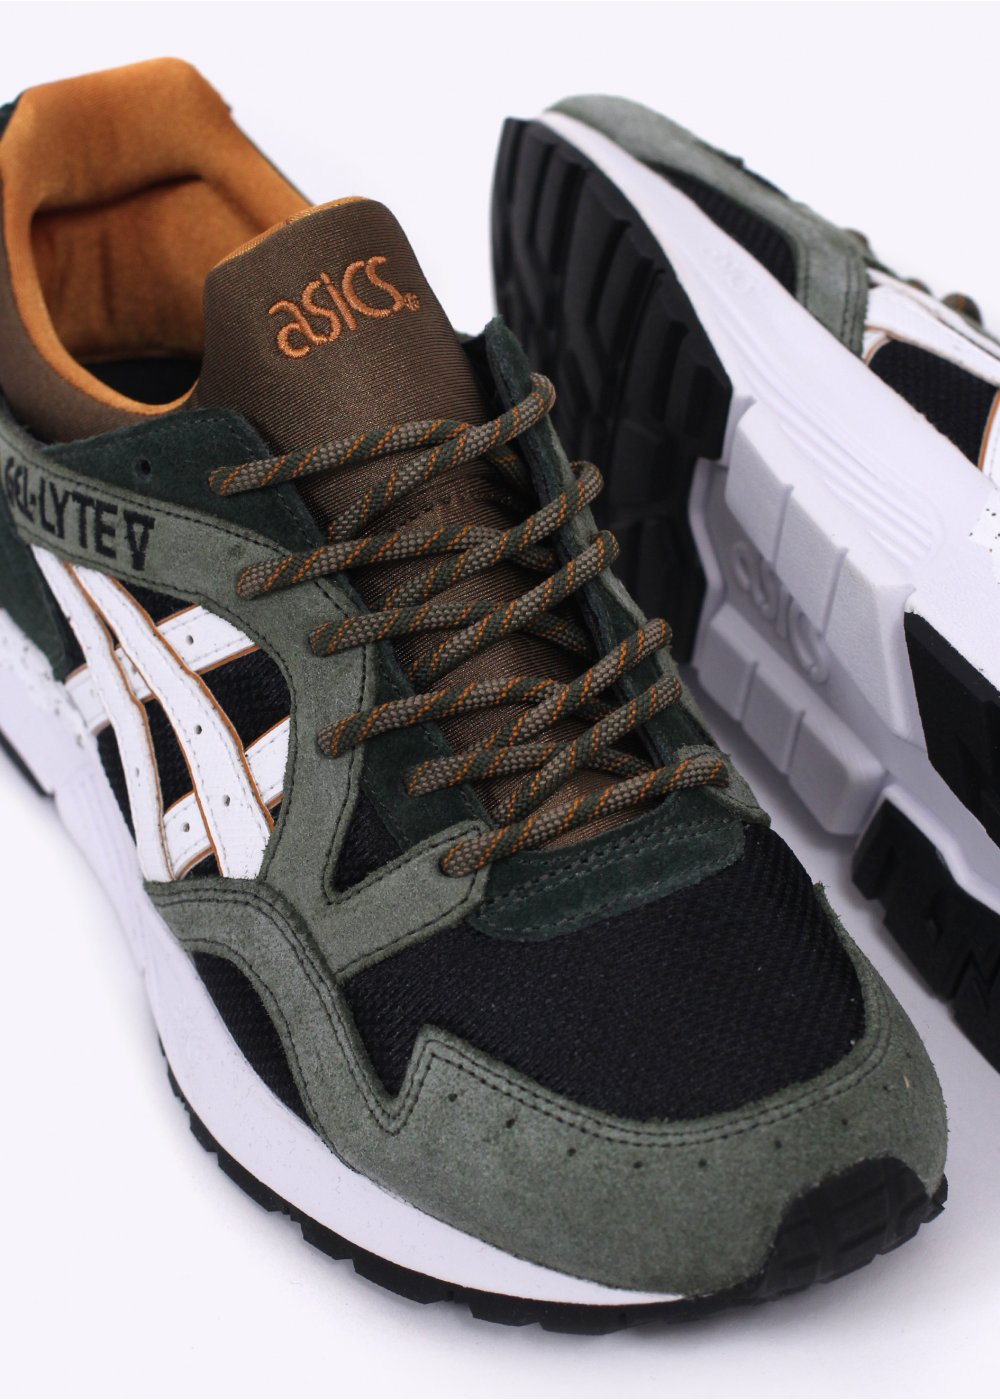 Black Gel Nails With One Silver Glitter Nail: ASICS Gel Lyte V 'Winter Trail' Trainers